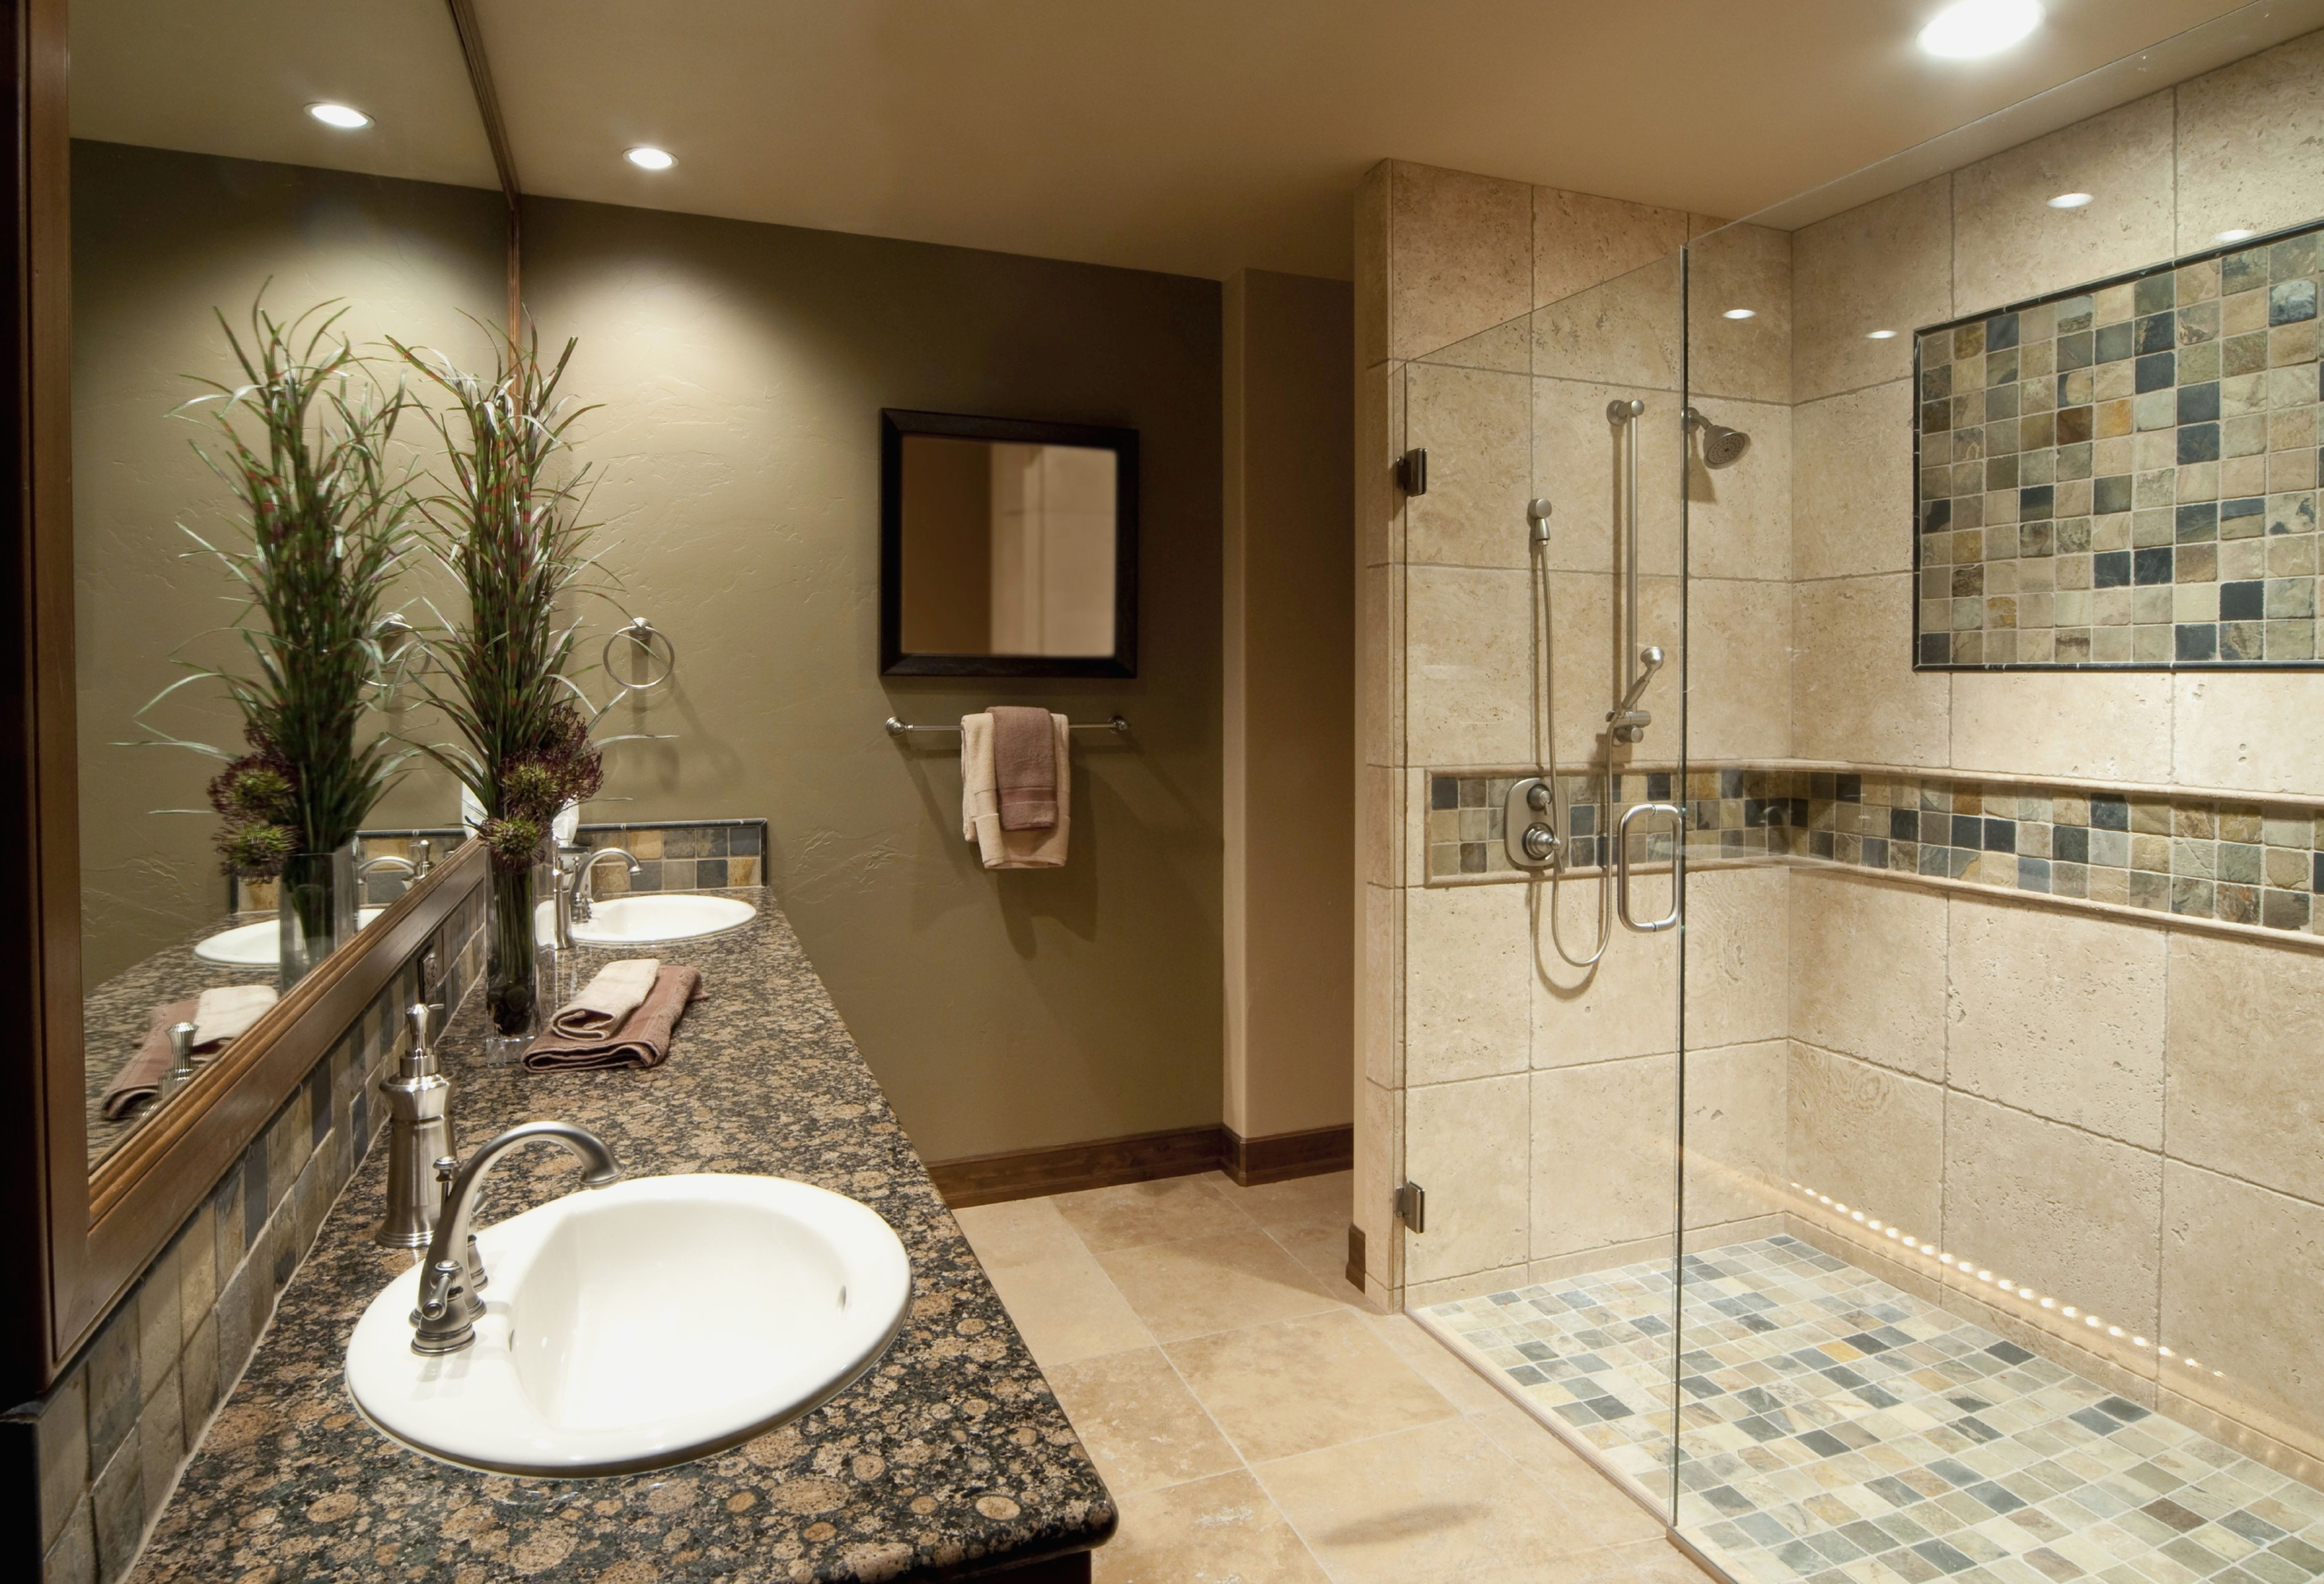 Average Cost Of Bathroom Remodel Contemporary Bathroom Remodel Average Cost for Bathroom Remodel Decorations Décor